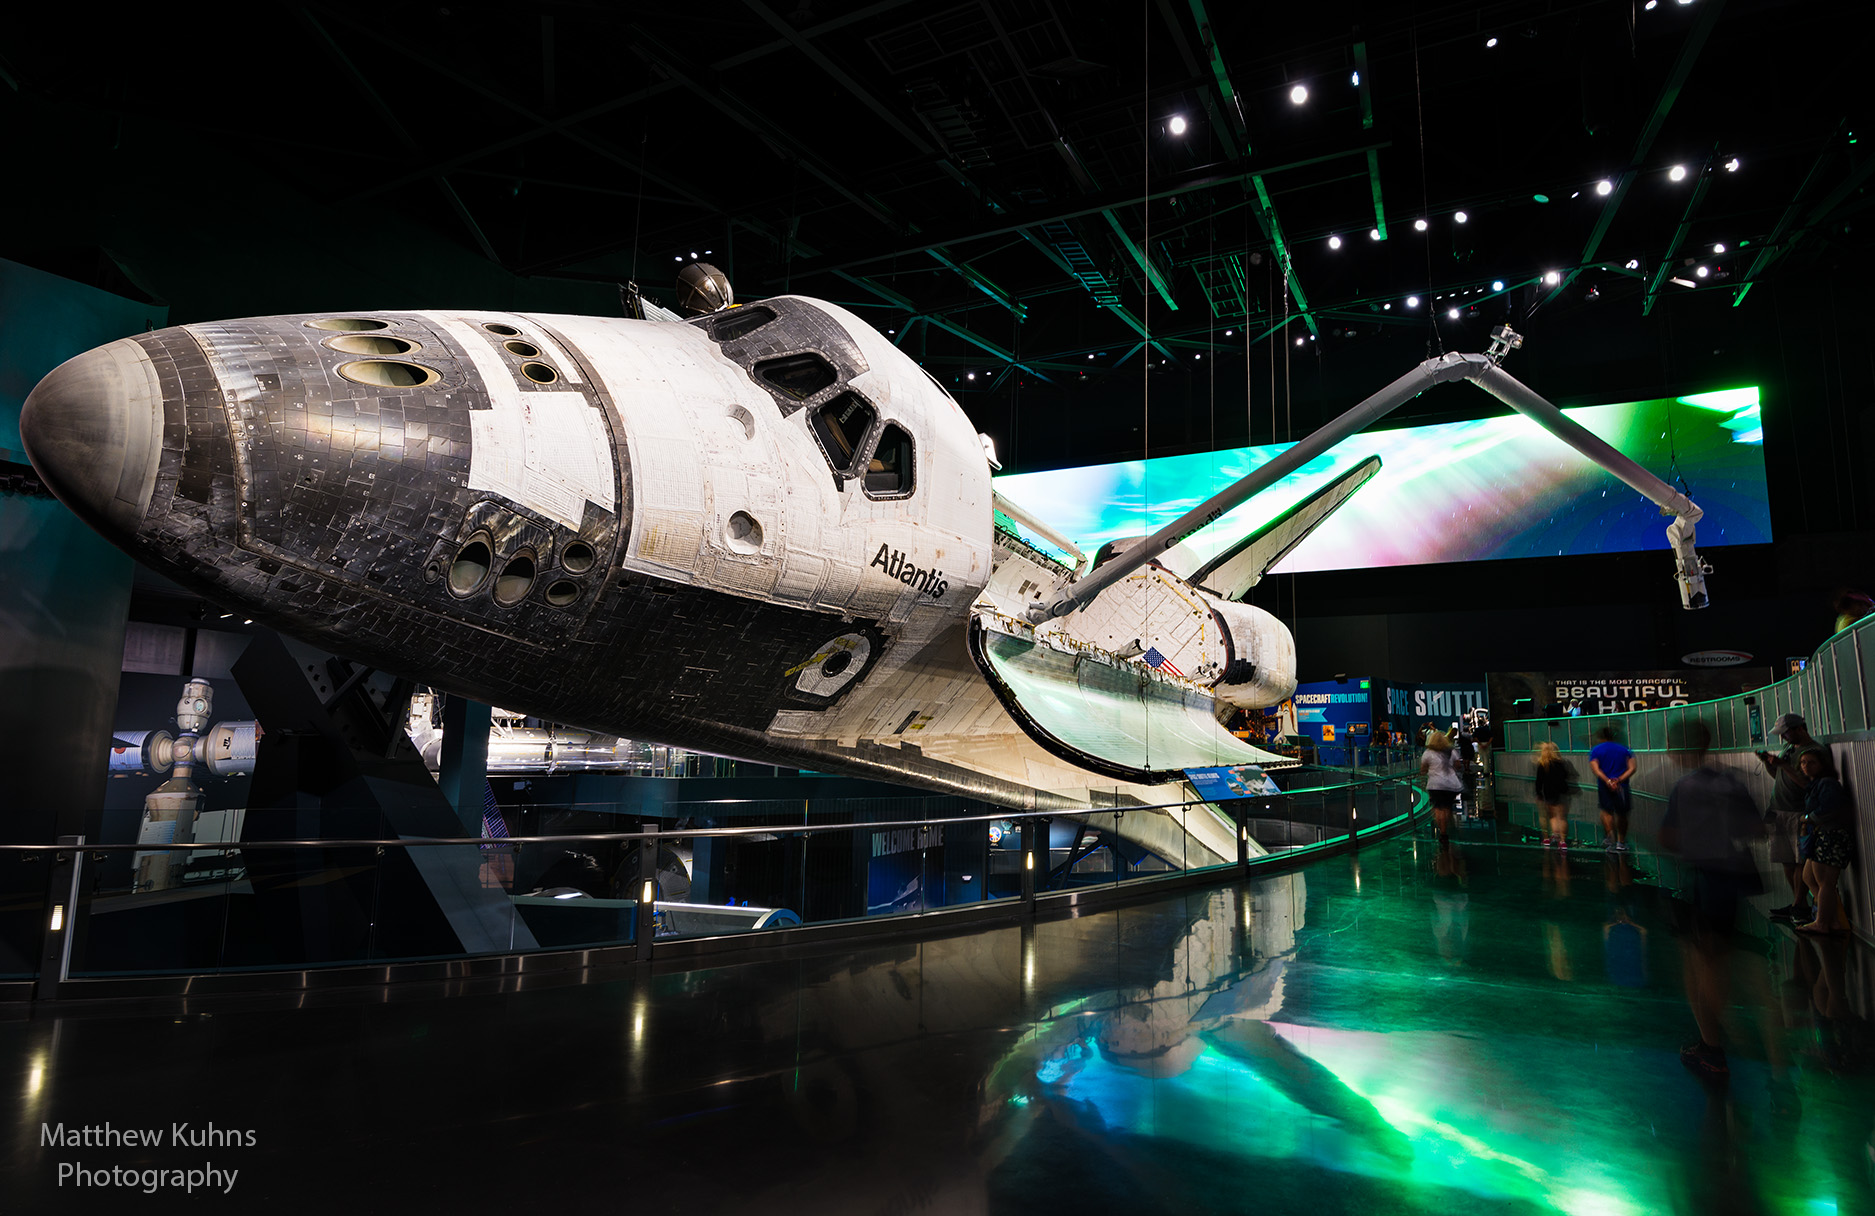 Atlantis.  Mounted on her side with the bay doors open and Aurora on a projection screen behind.  33 missions over 26 years carrying 207 astronauts 126 million miles over 307 days in space.